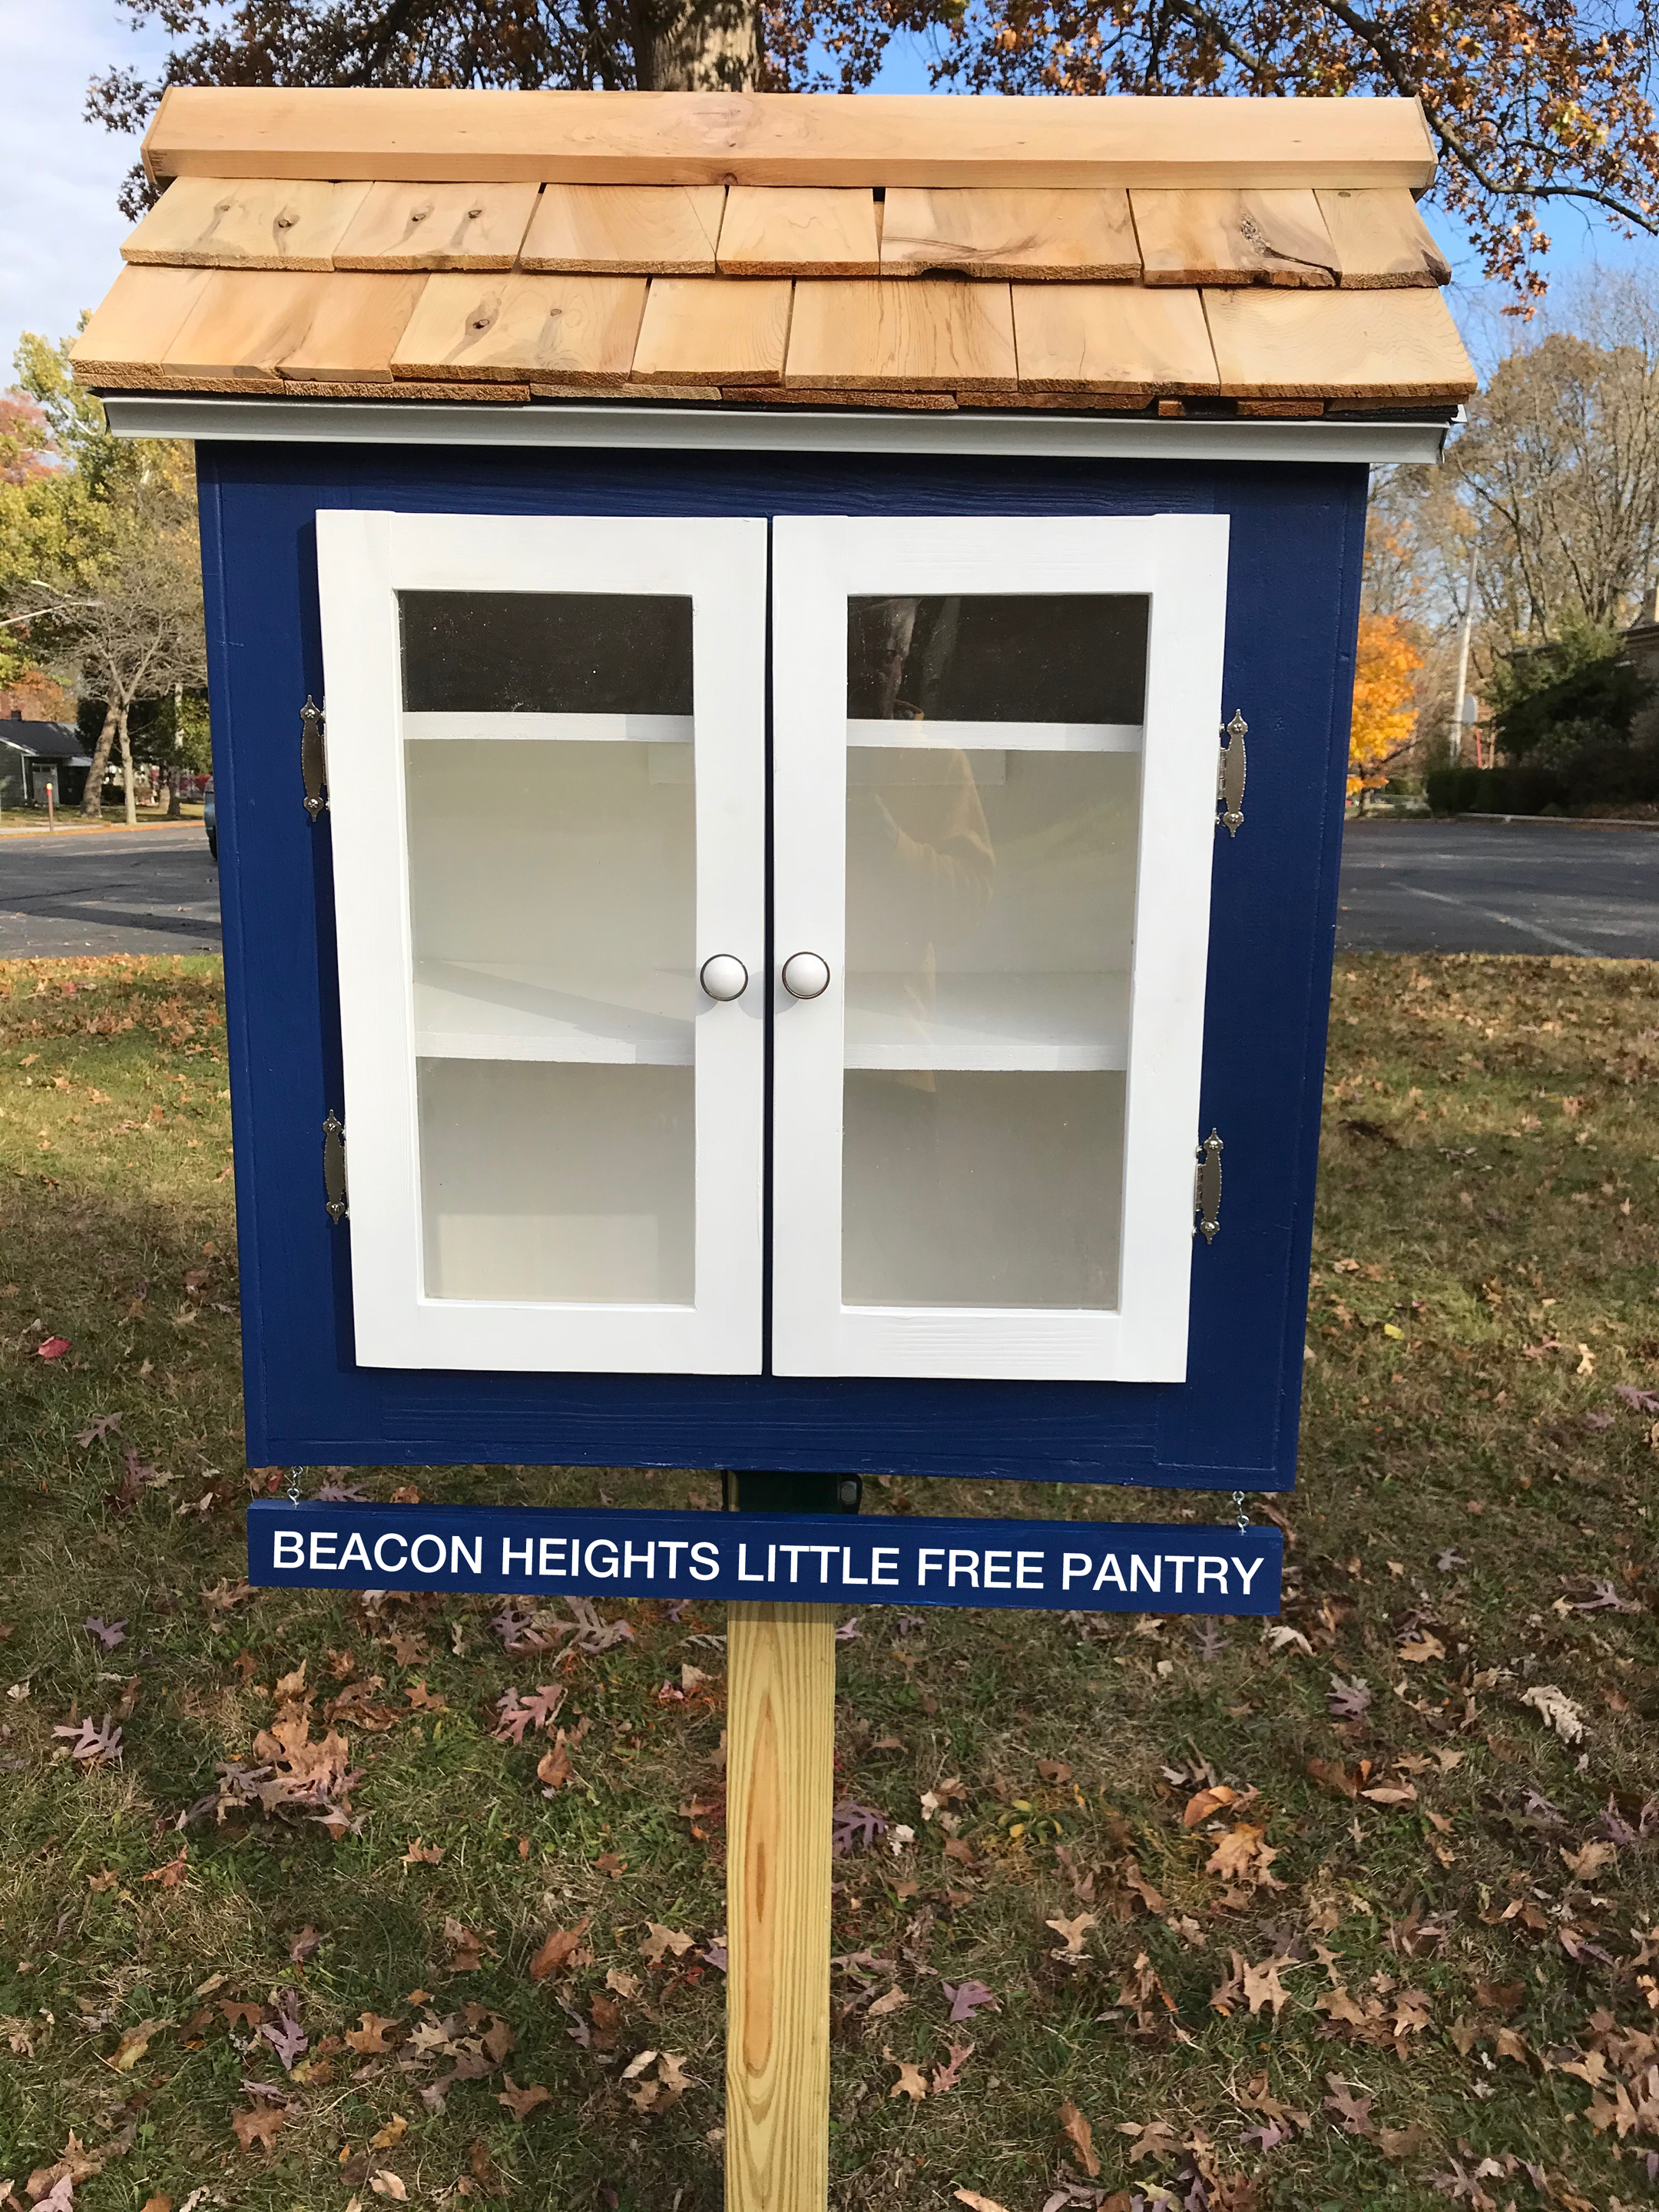 Beacon Heights Little Free Pantry Photo 1